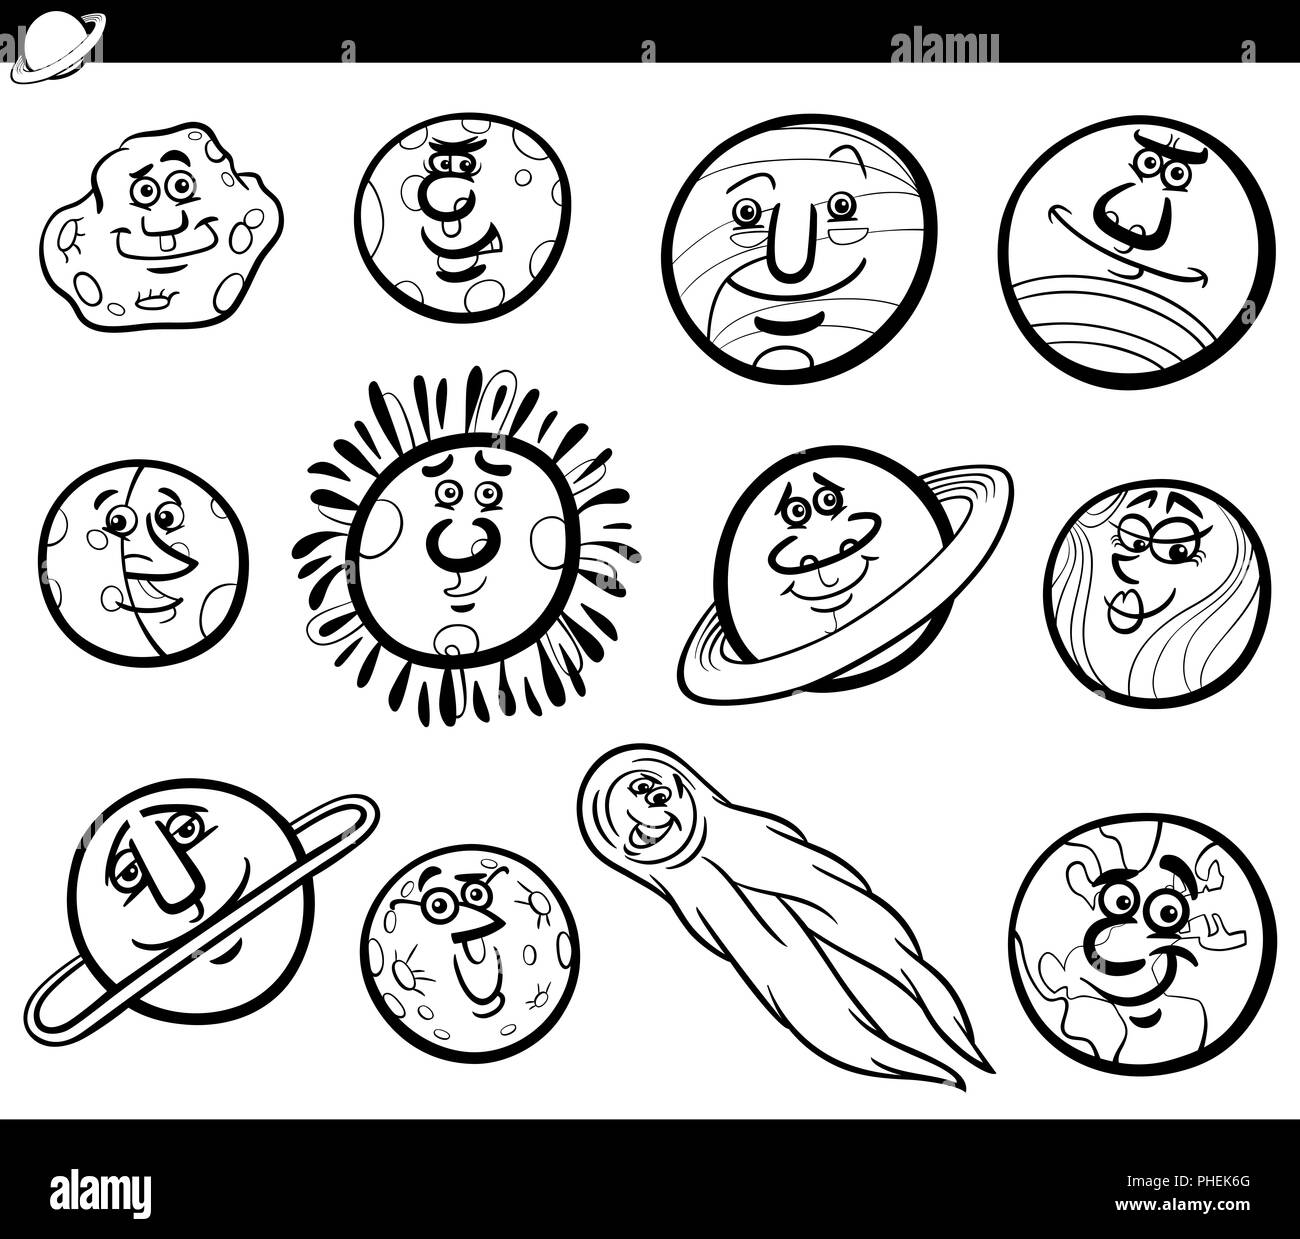 Planets Cartoon Characters Set coloring book Stock Photo ...